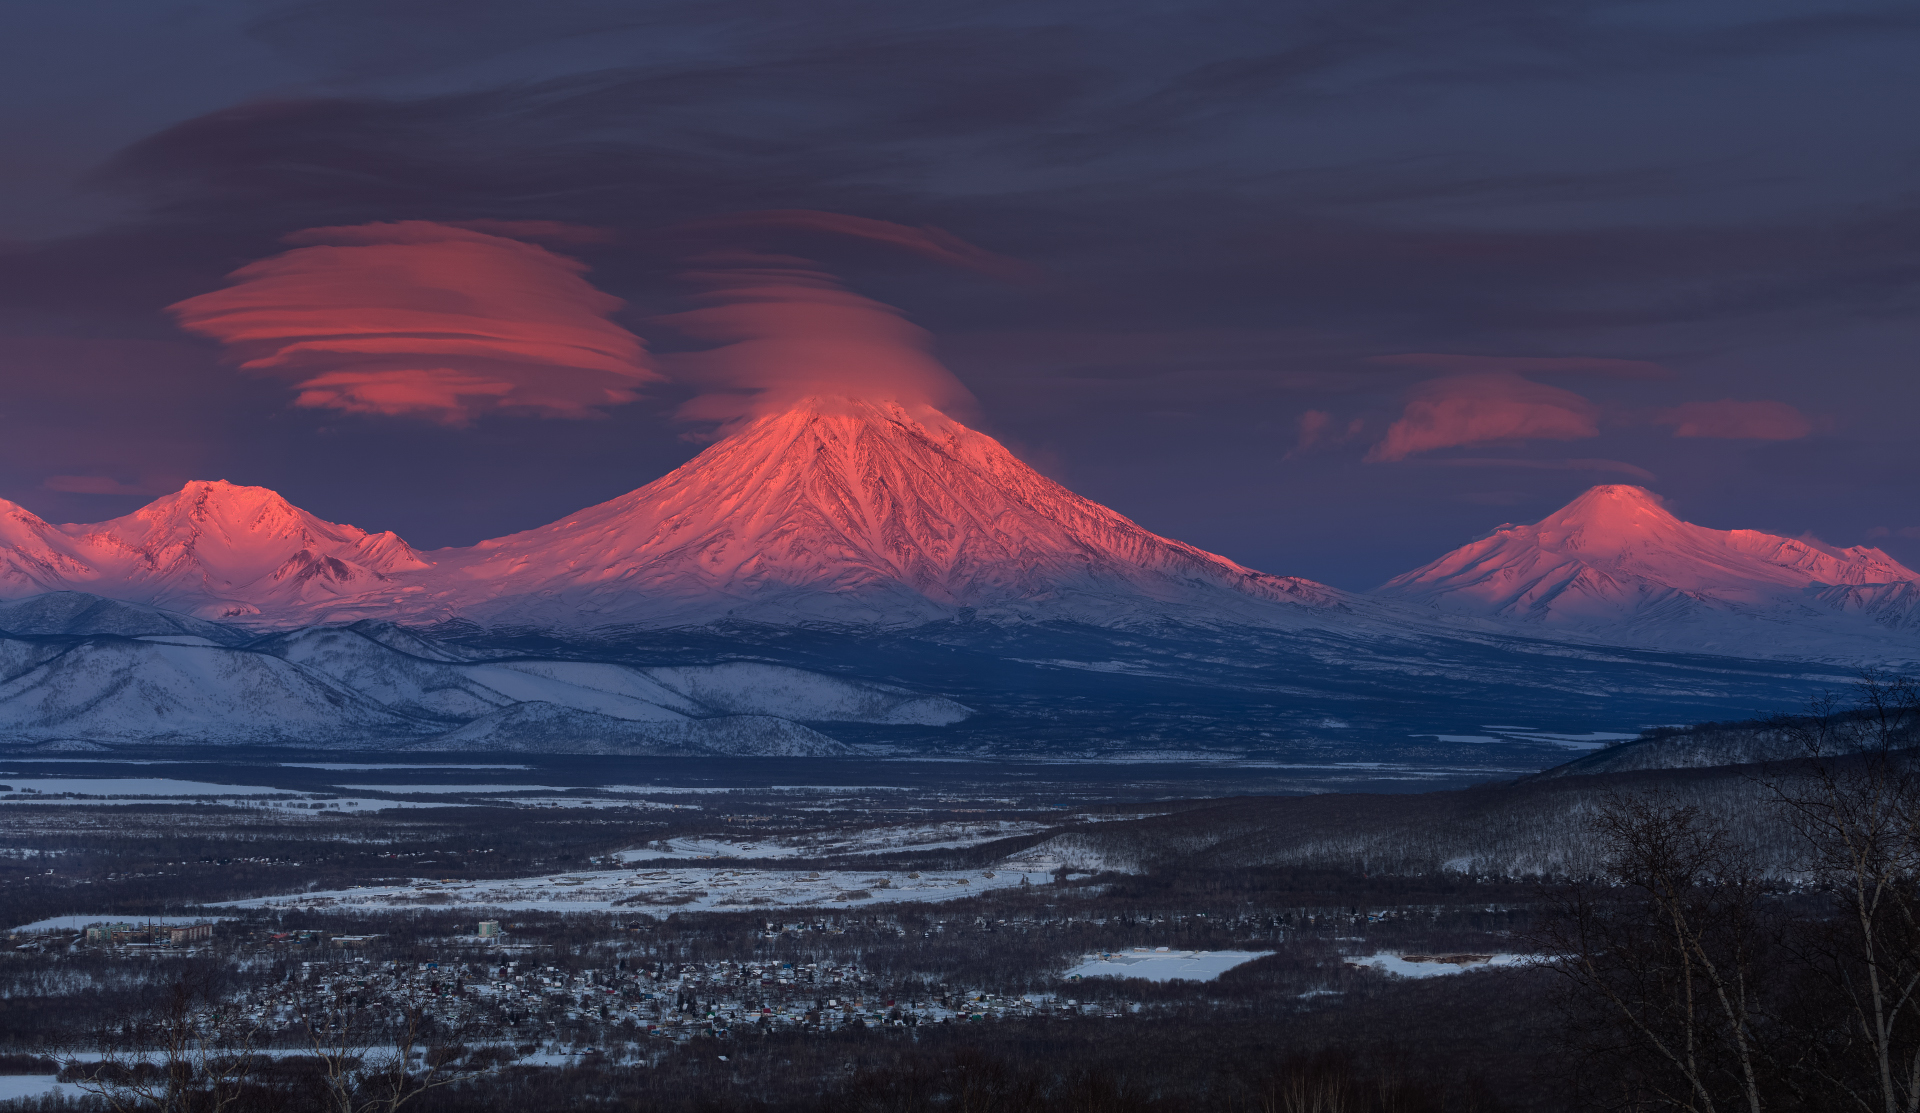 Koryaksky and Avachinsky volcanoes, Kamchatka, Russia